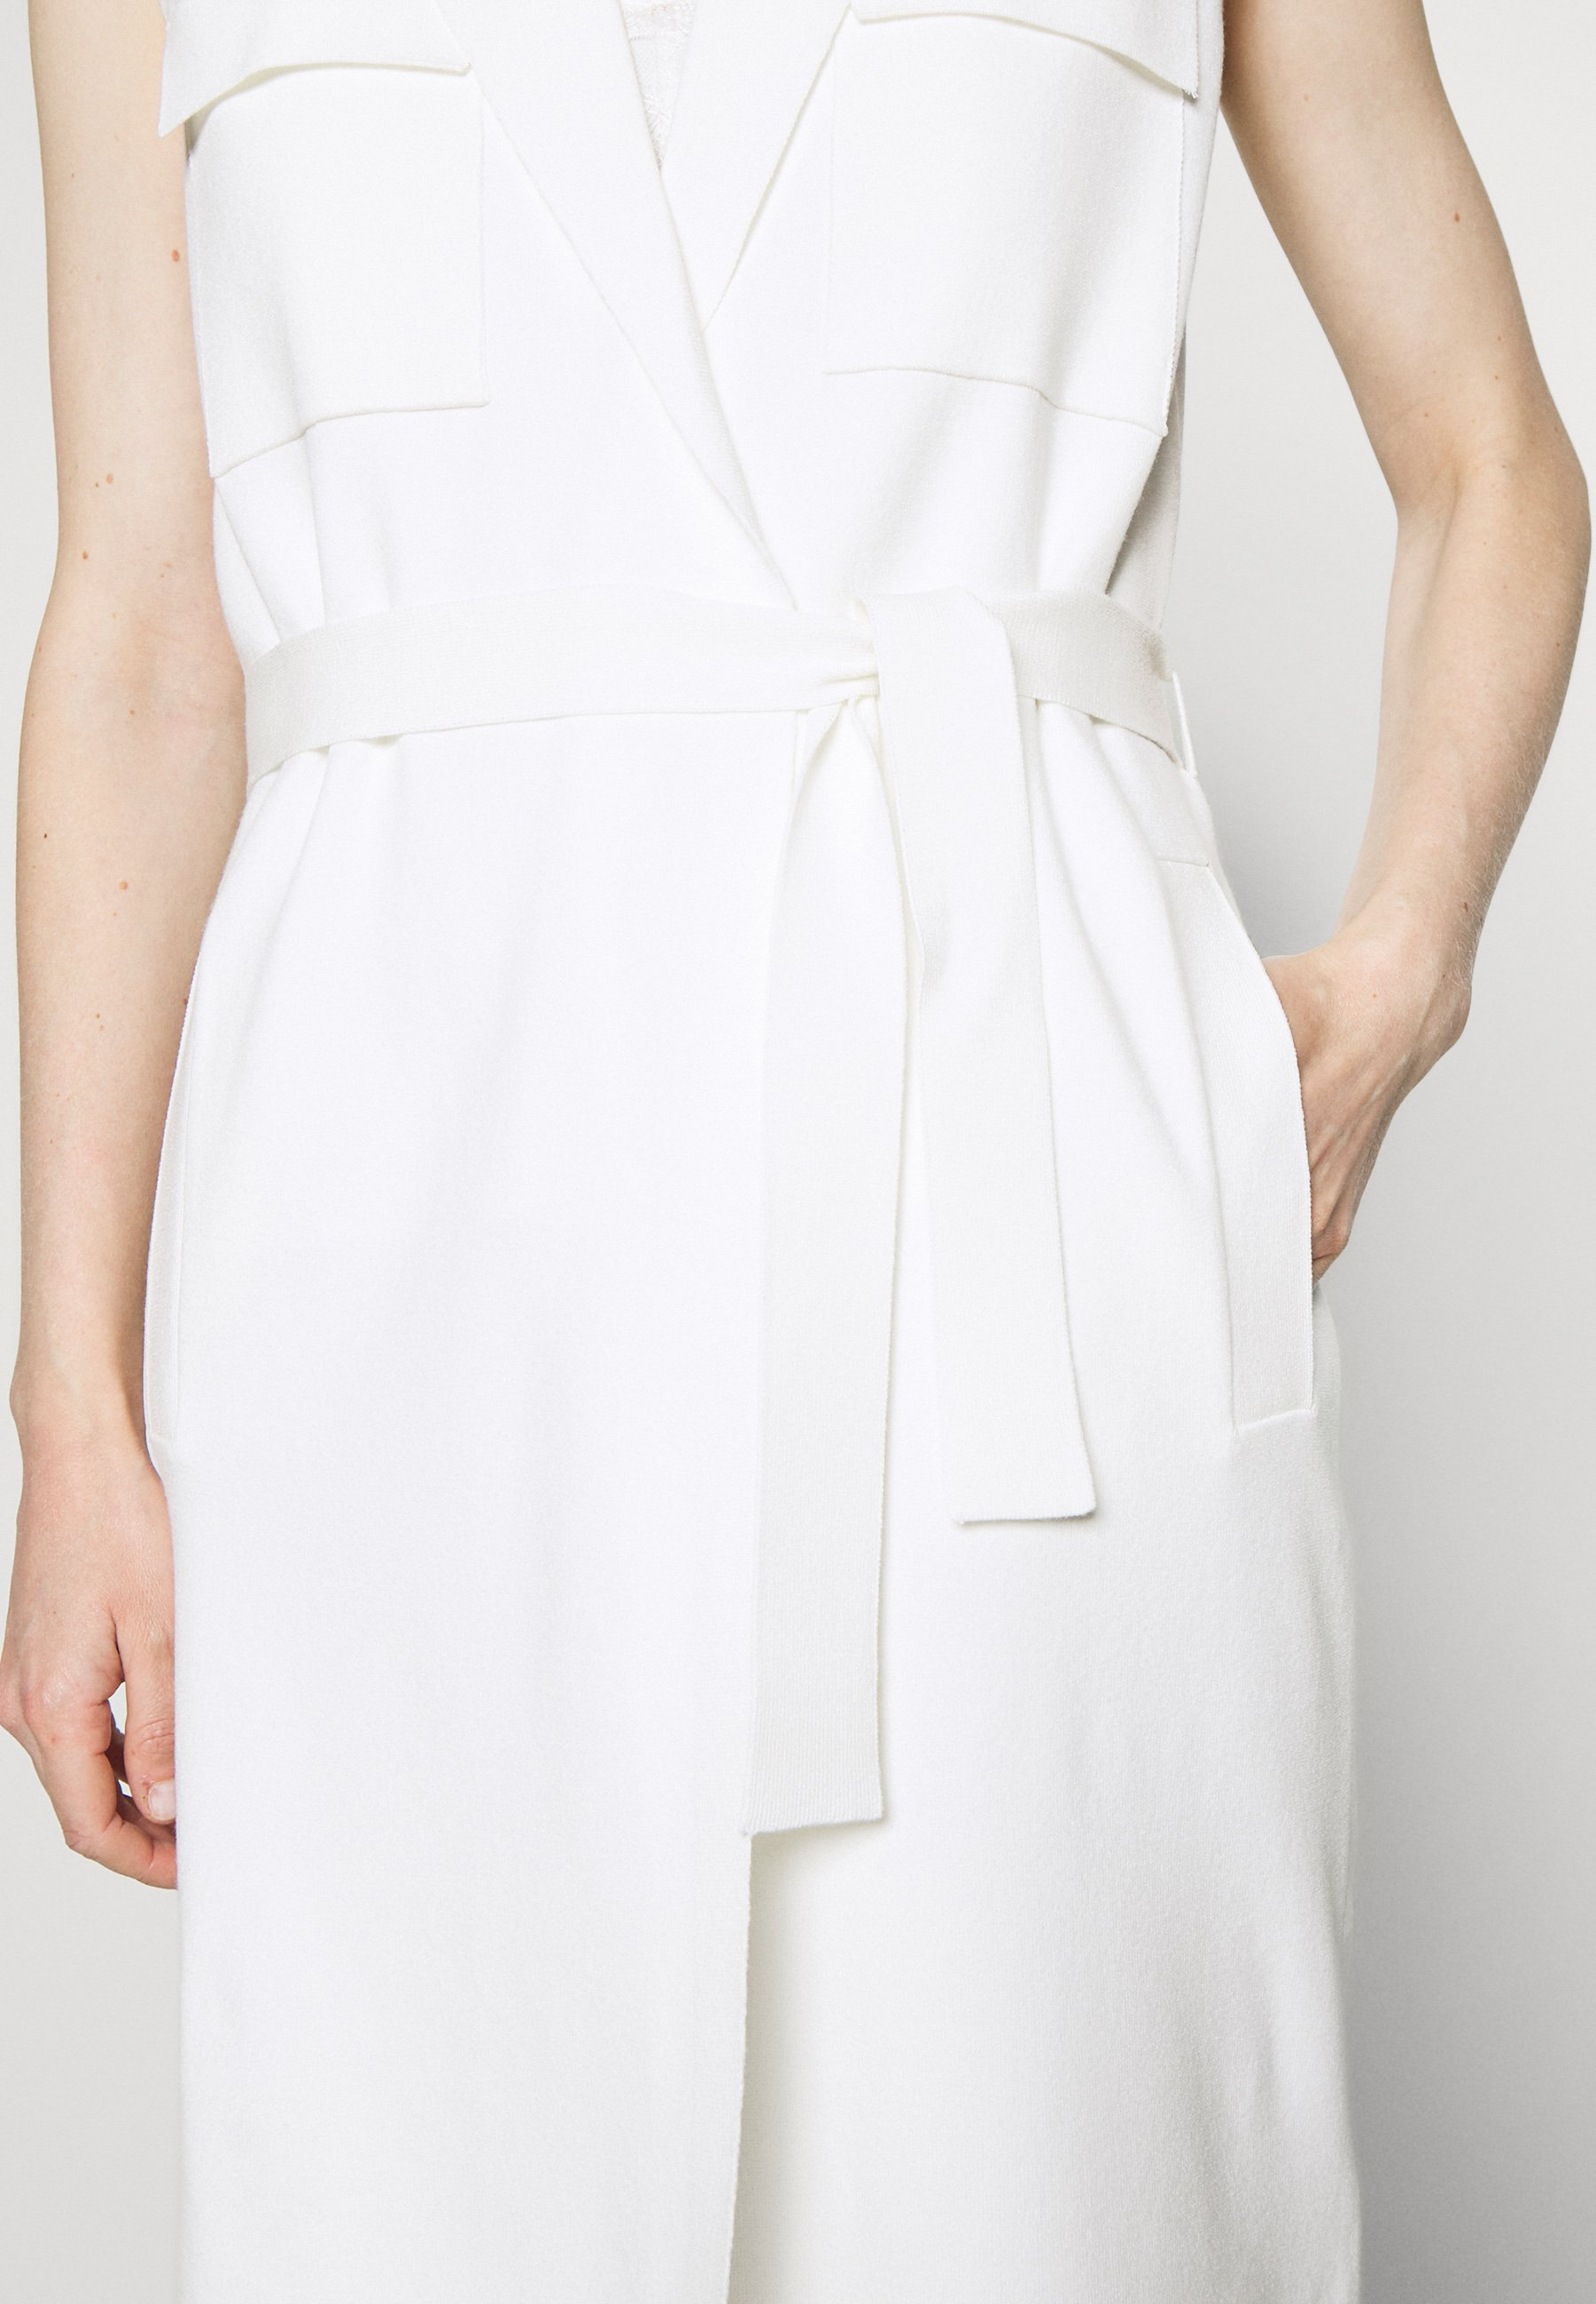 Marc O'Polo PURE HEAVY SLEEVELESS Weste natural white/weiß